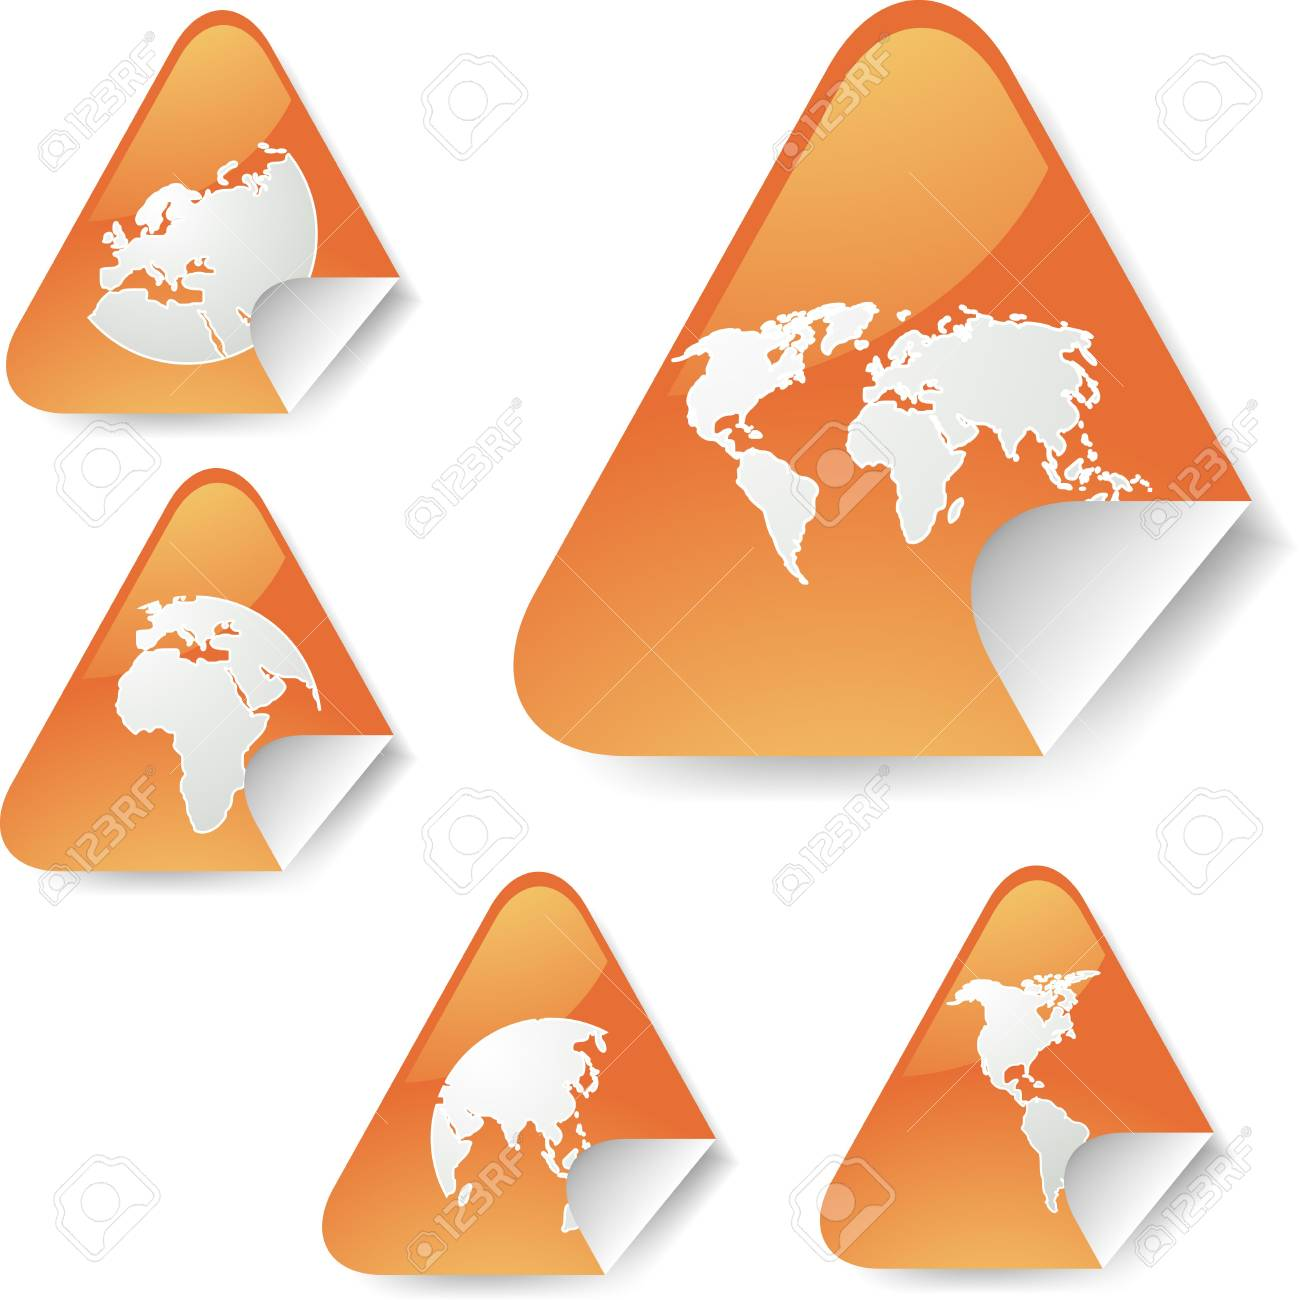 world map icons on triangle sticker shapes stock photo picture and